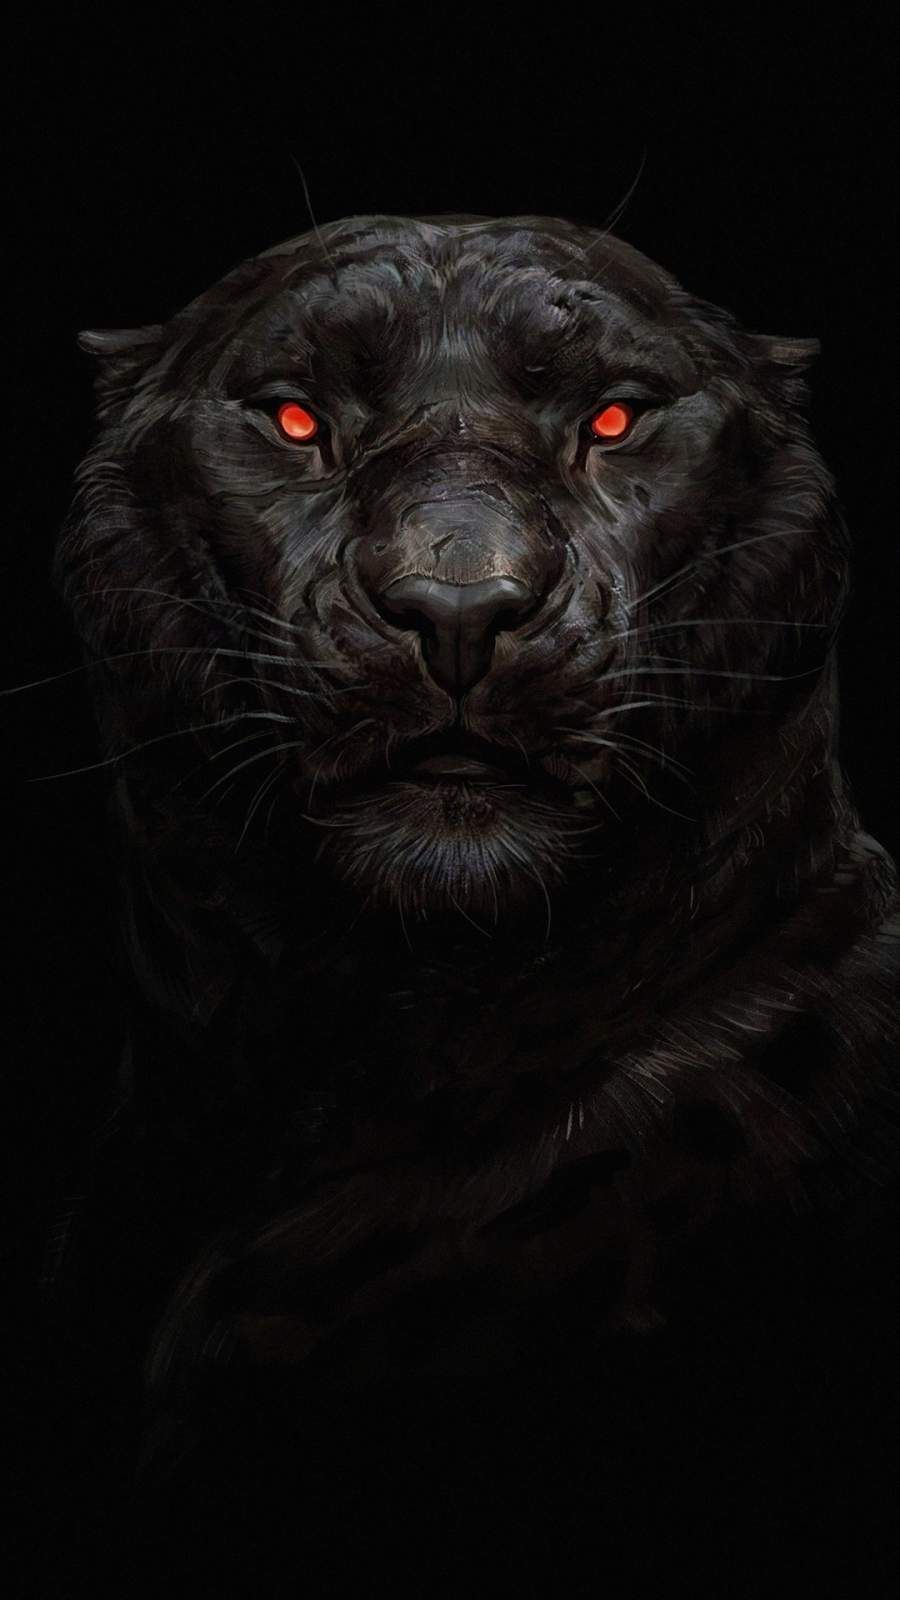 Black Panther Glowing Eye Iphone Wallpaper Jaguar Animal Black Panther Hd Wallpaper Dark Wallpaper